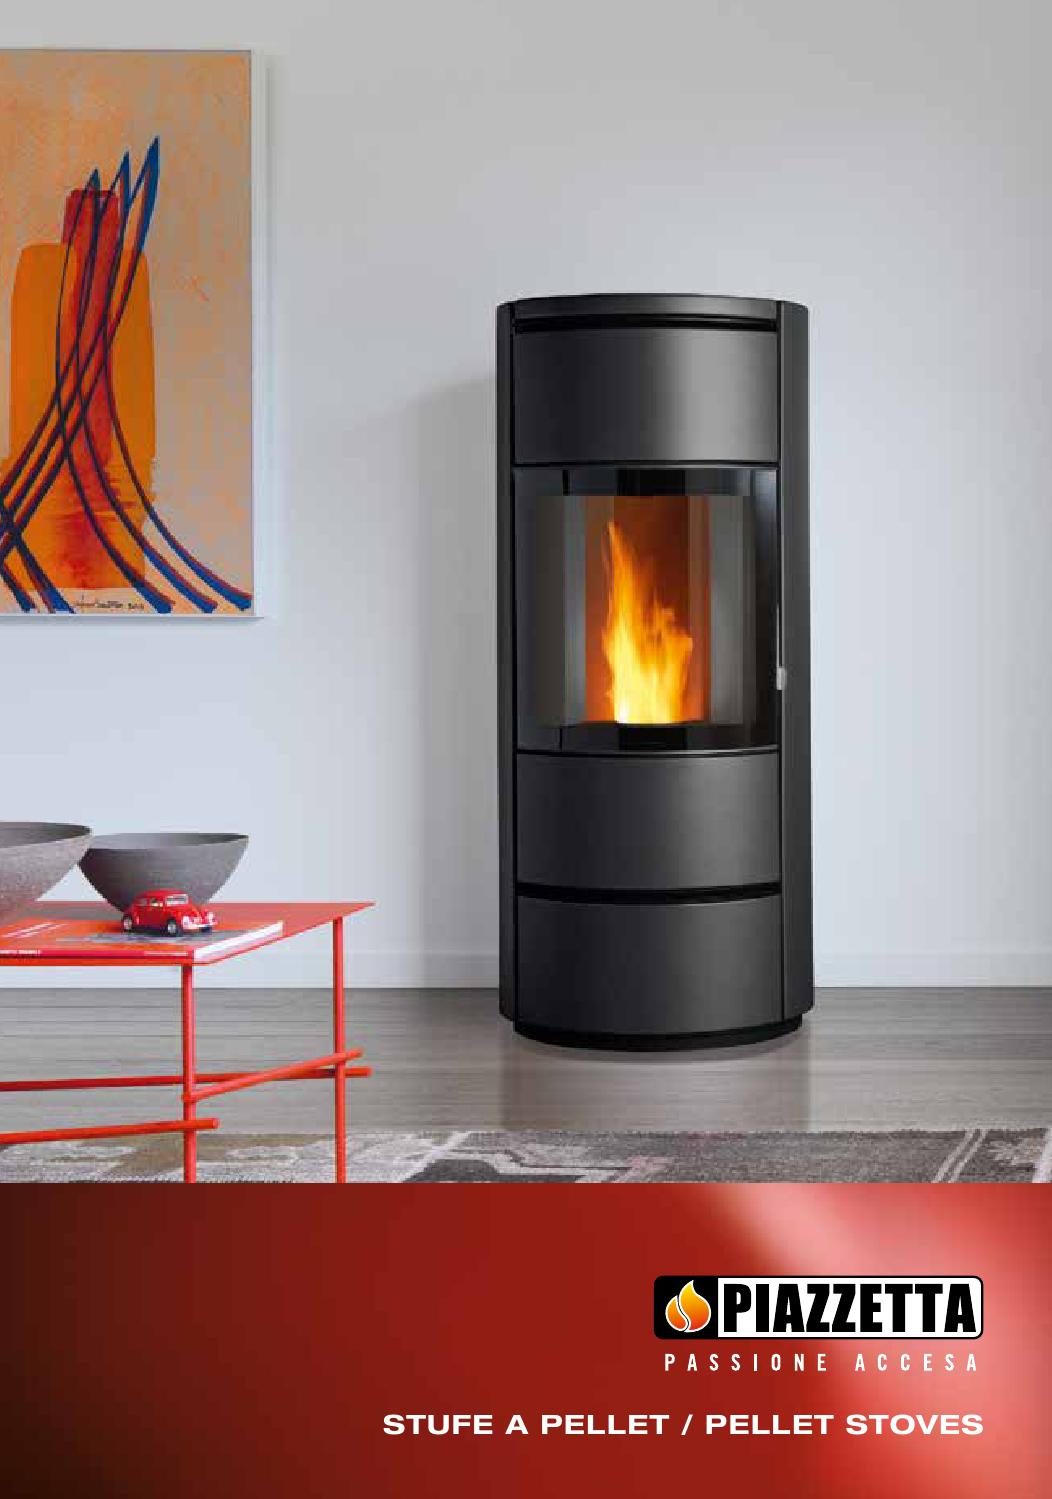 Piazzetta stufe a pellet 2015 by idea studio caminetti - Stufe per riscaldare casa ...